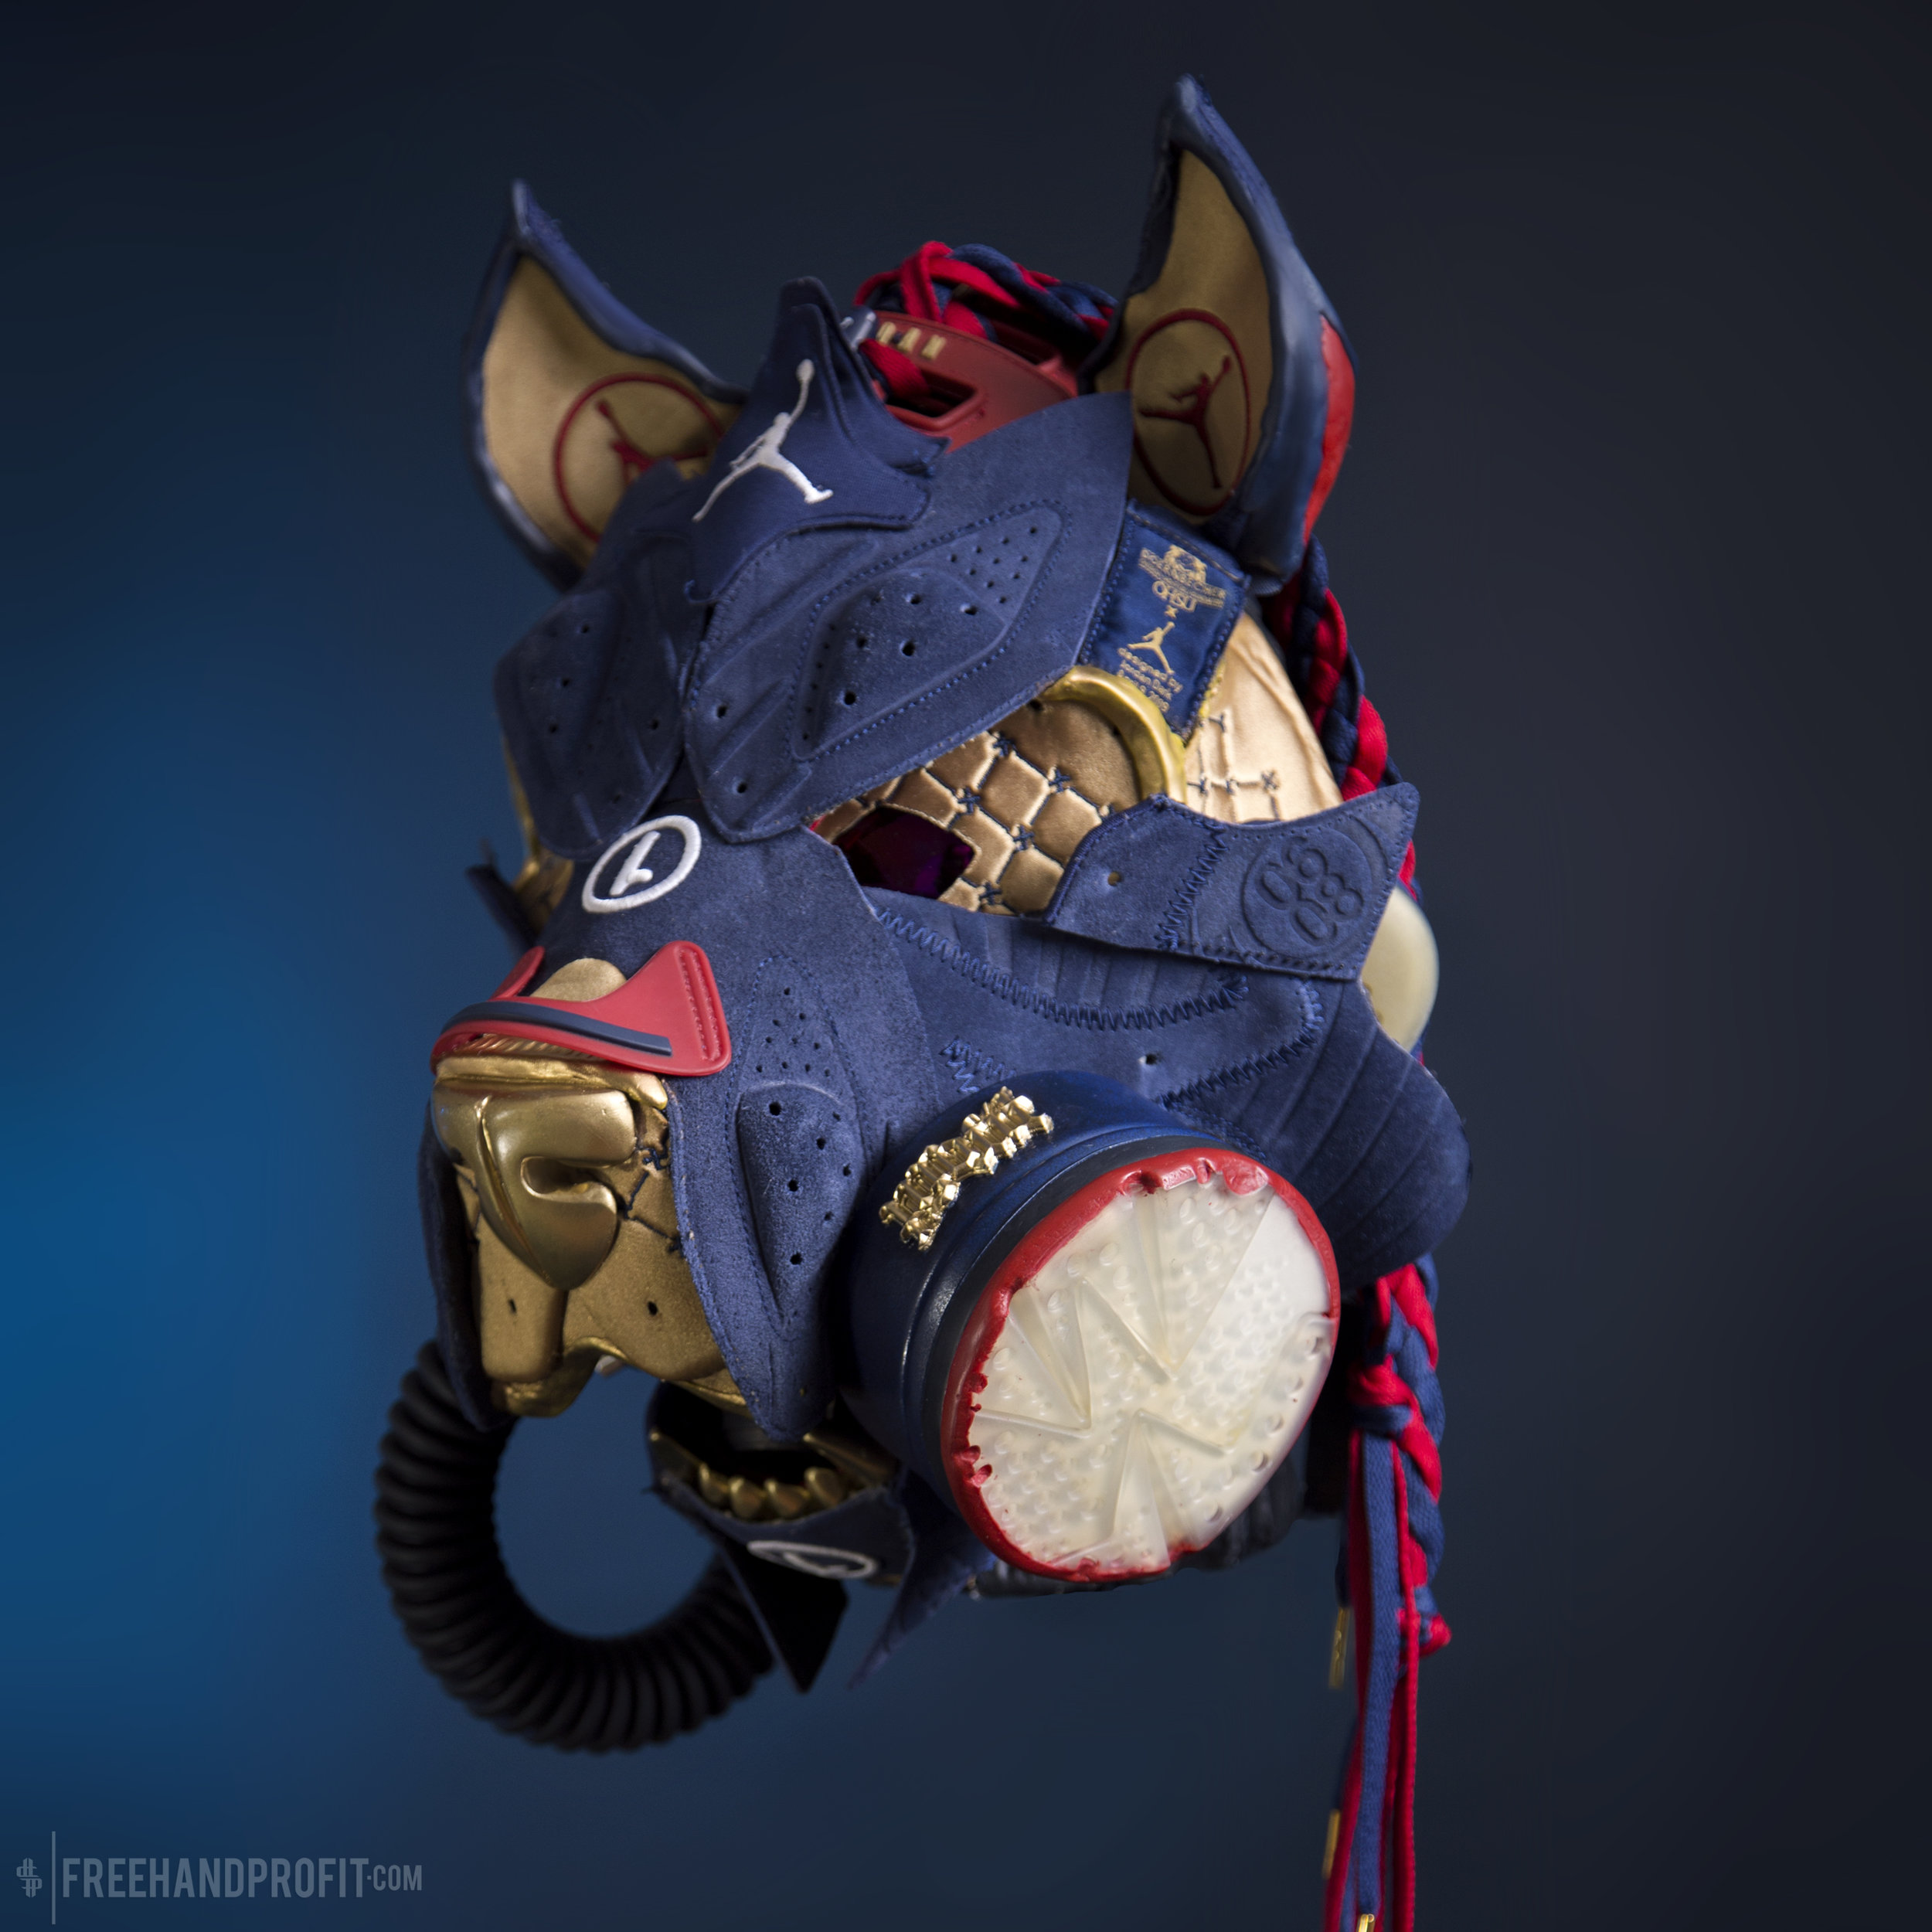 NEW SNEAKER MASK!   Click here to see more of the DB6 Pit Bull Gas Mask!